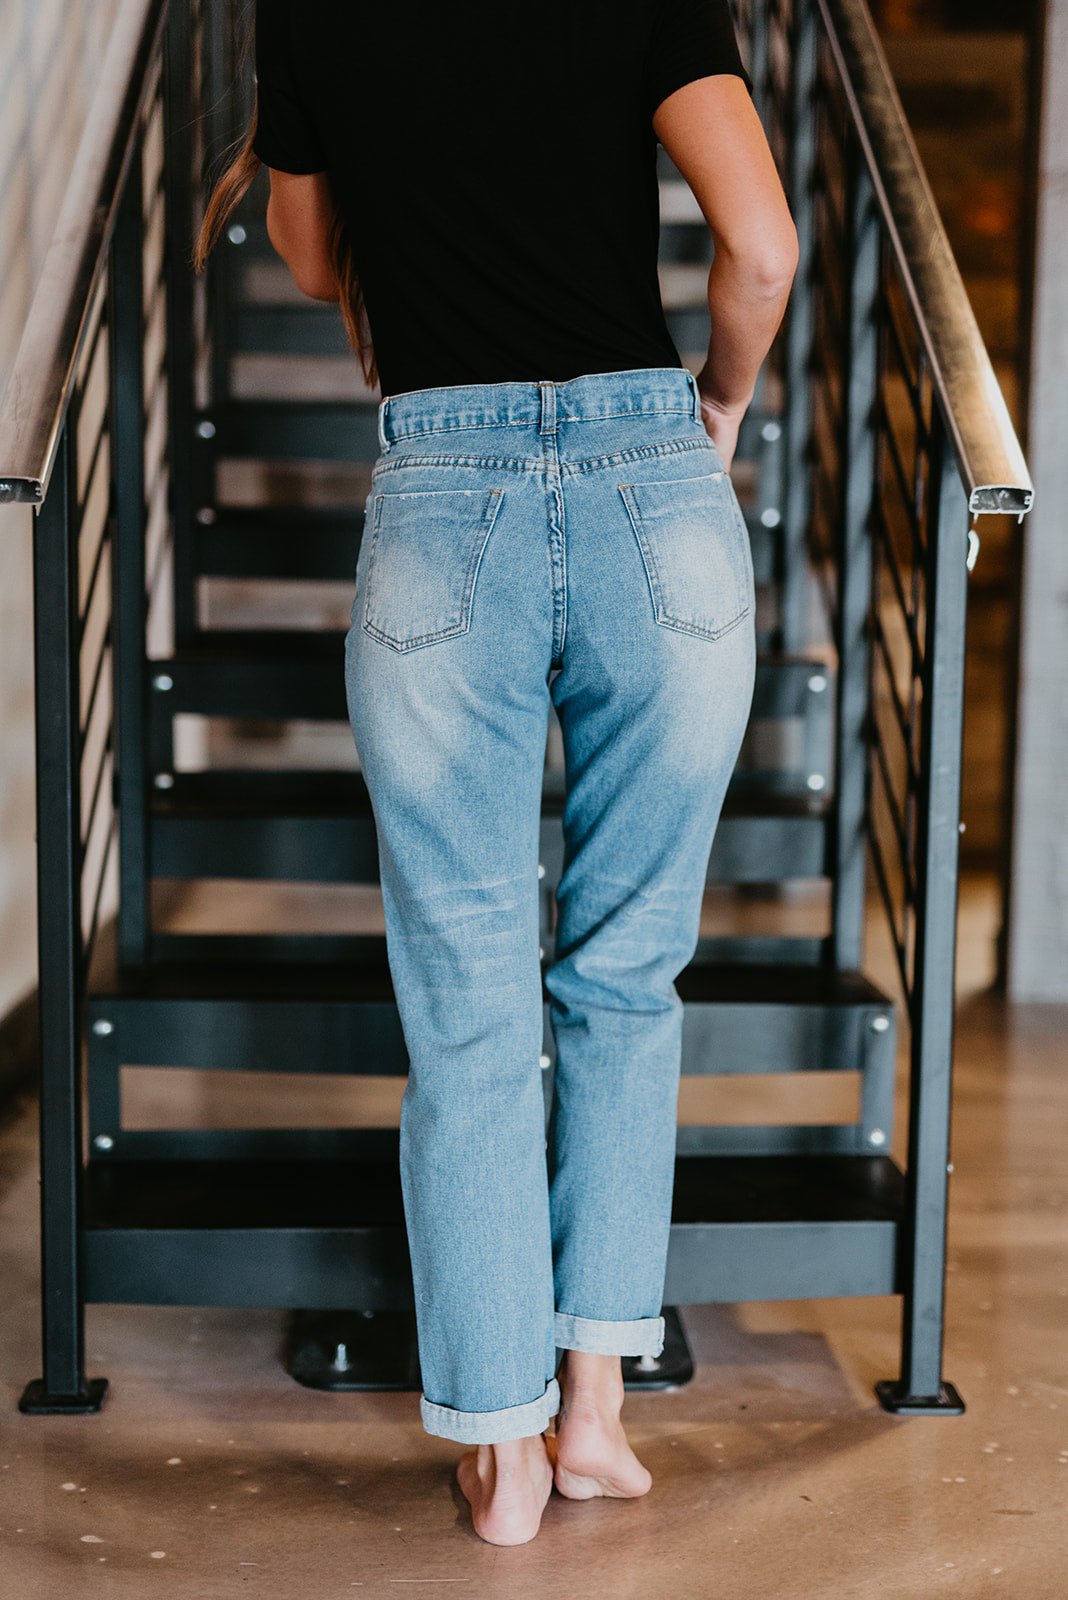 THE TOMGIRL STRAIGHT LEG JEAN IN LIGHT DENIM